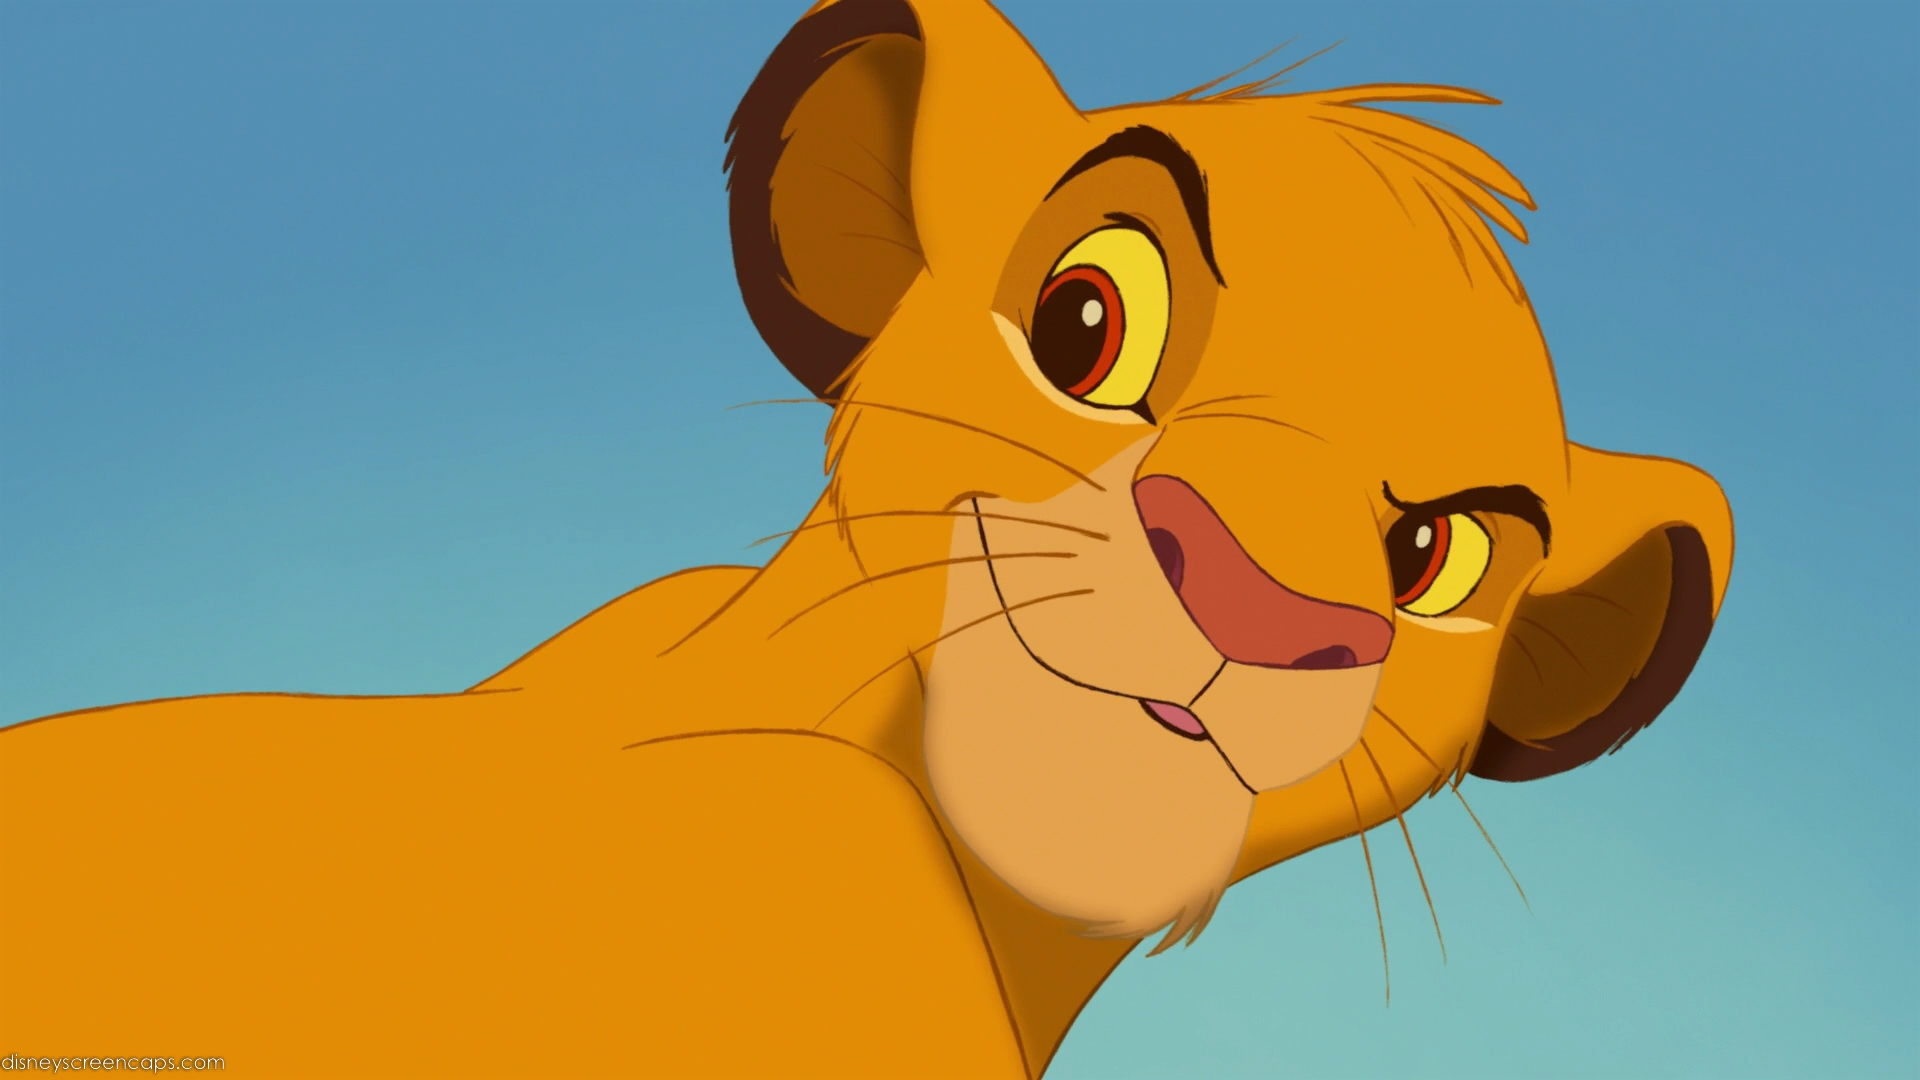 http://static1.wikia.nocookie.net/__cb20120409220861/disney/images/0/07/Simba-2-(The_Lion_King).jpg